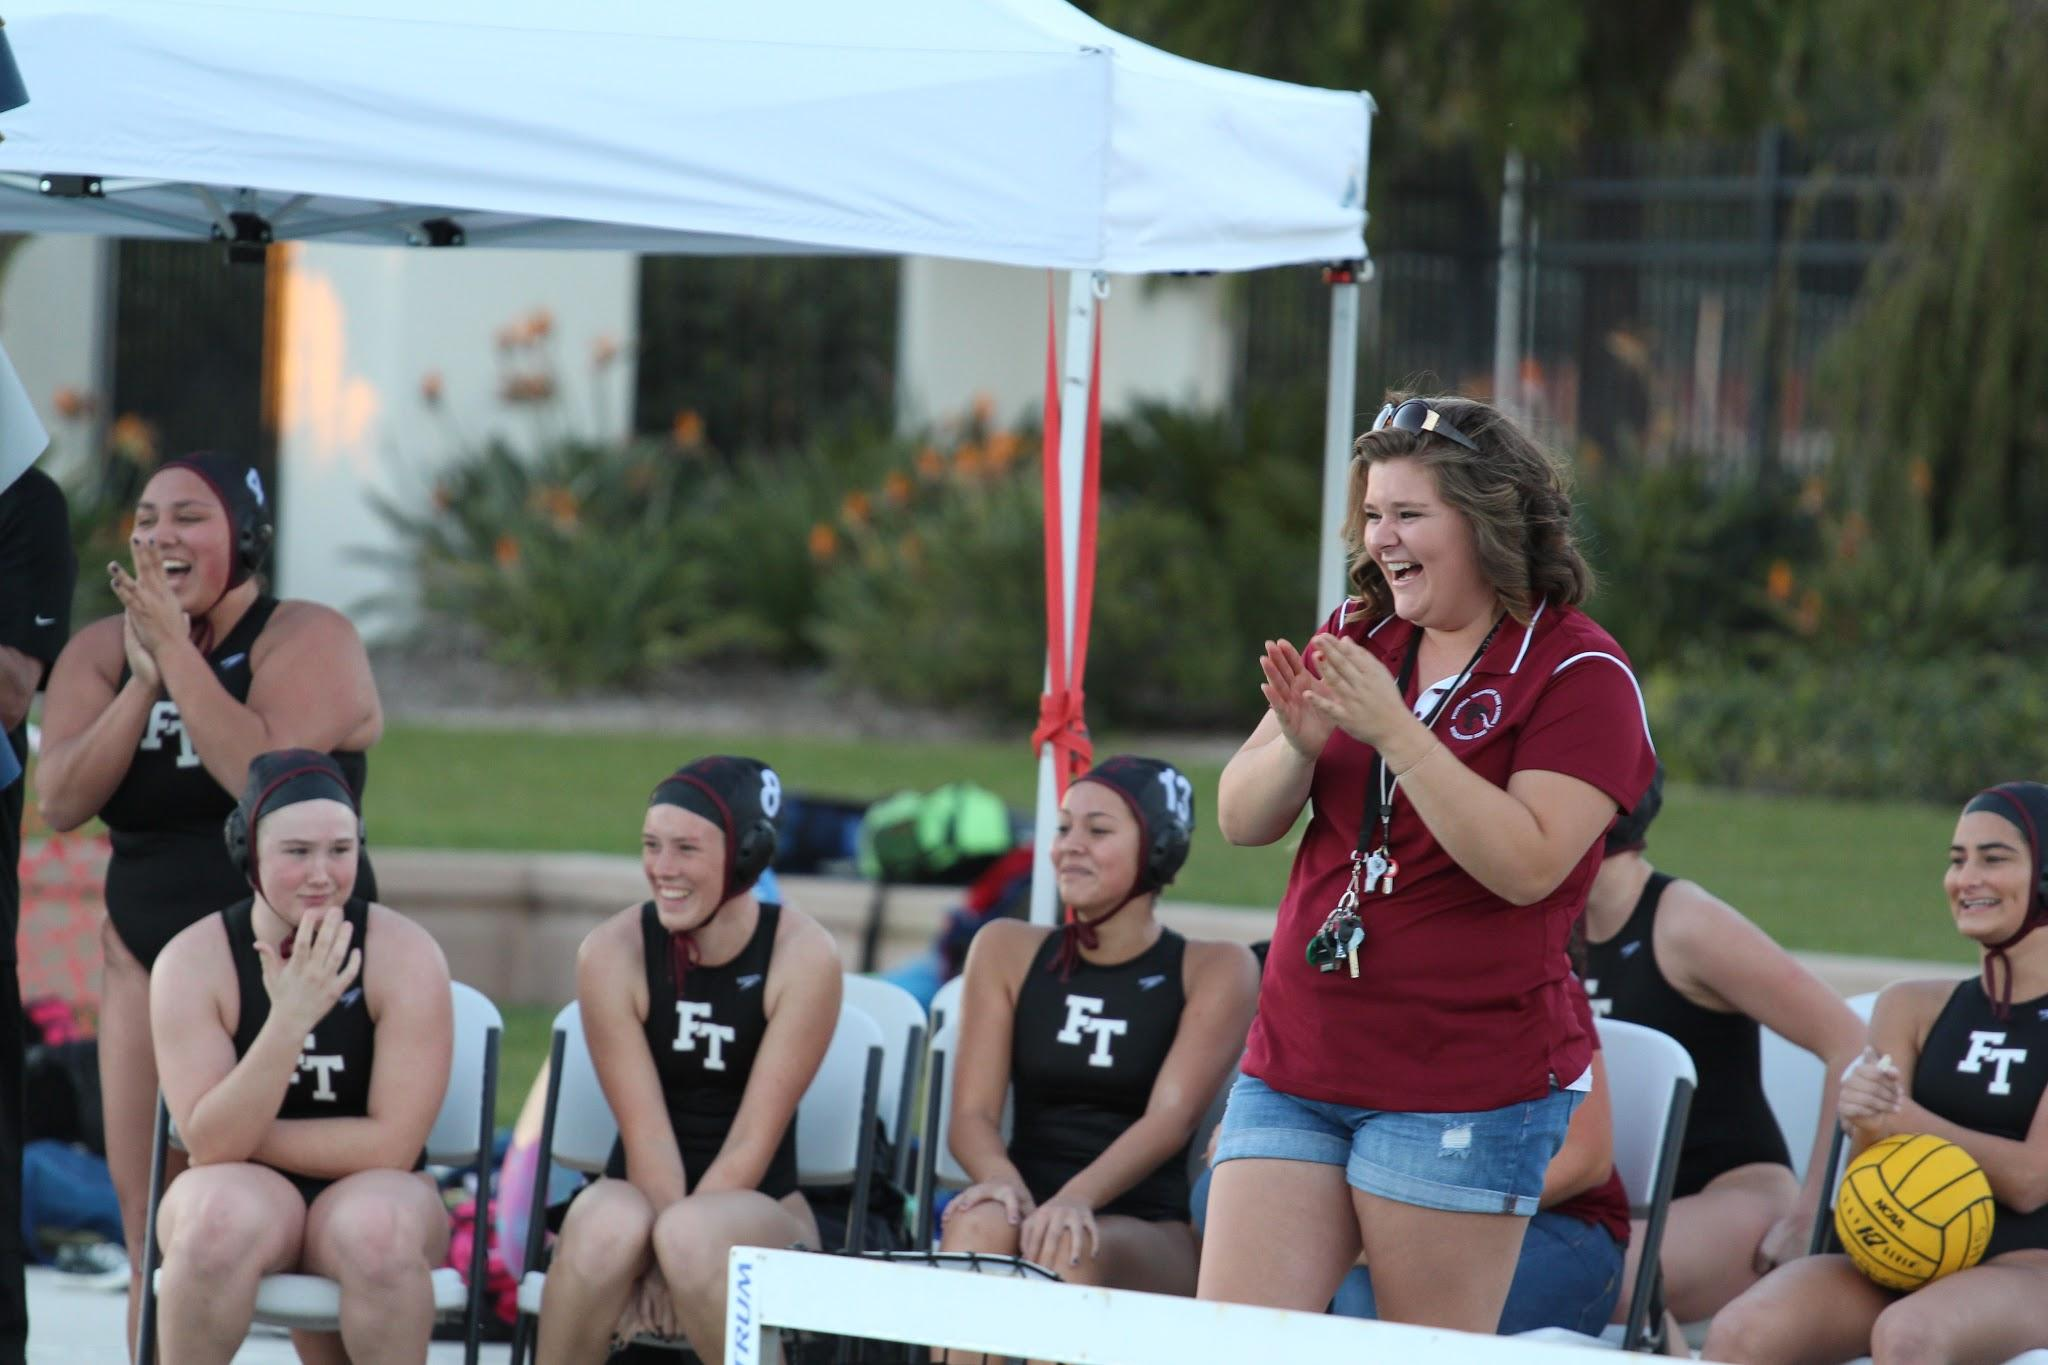 Coach Samantha Eberson at a game cheering her team on. Credit: Kazu Koba/The Foothill Dragon Press